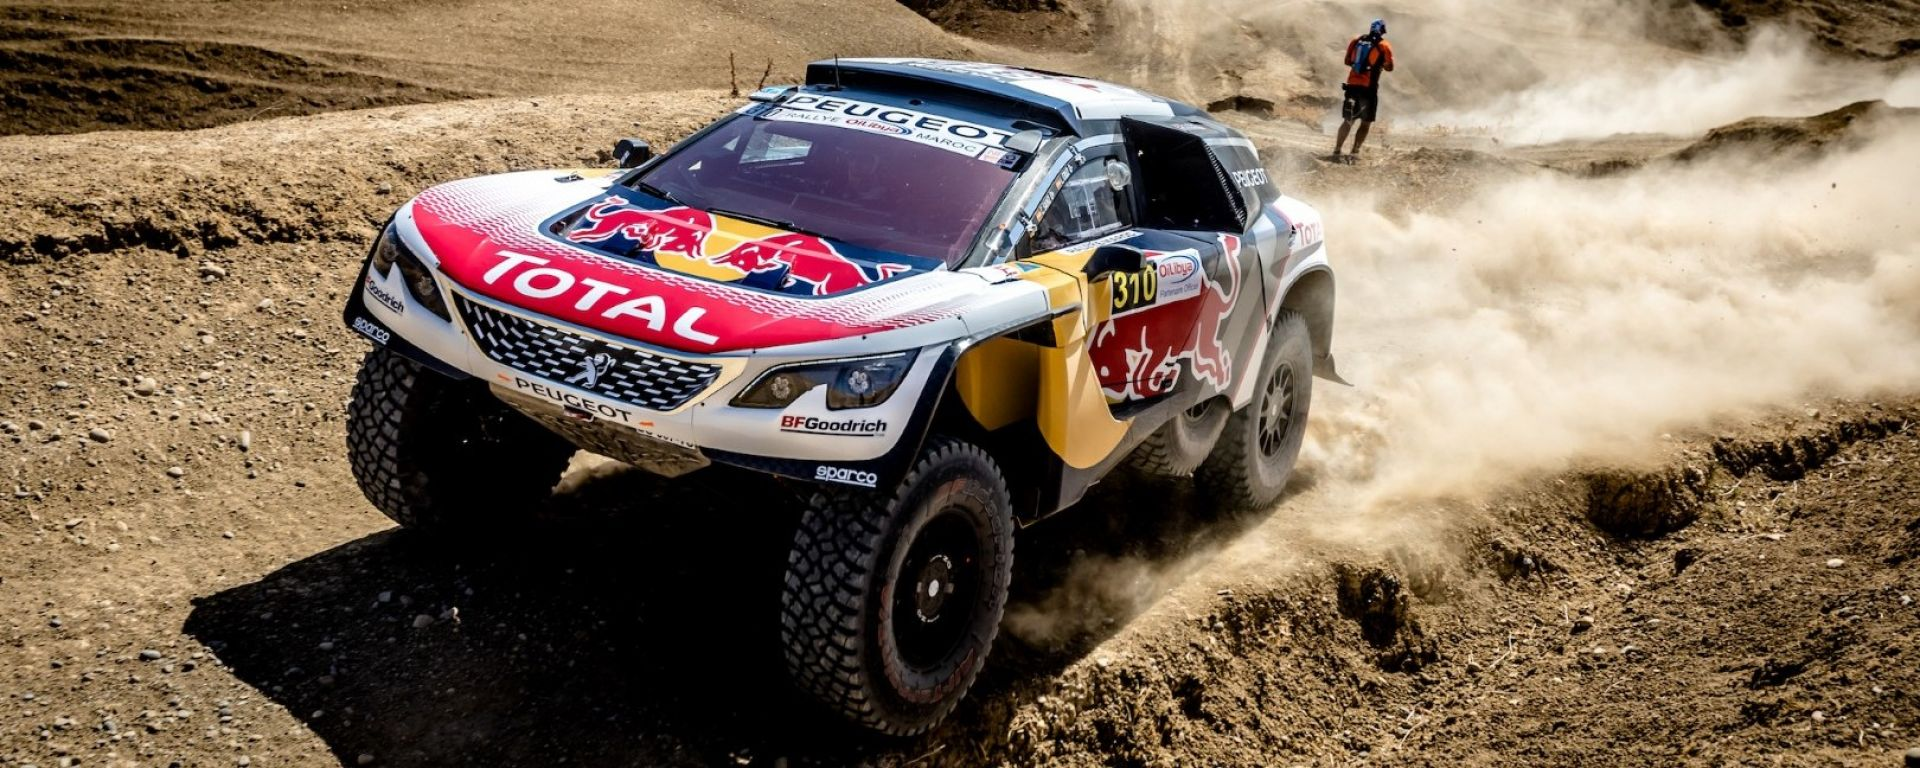 Peugeot 3008 DKR - Rally del Marocco